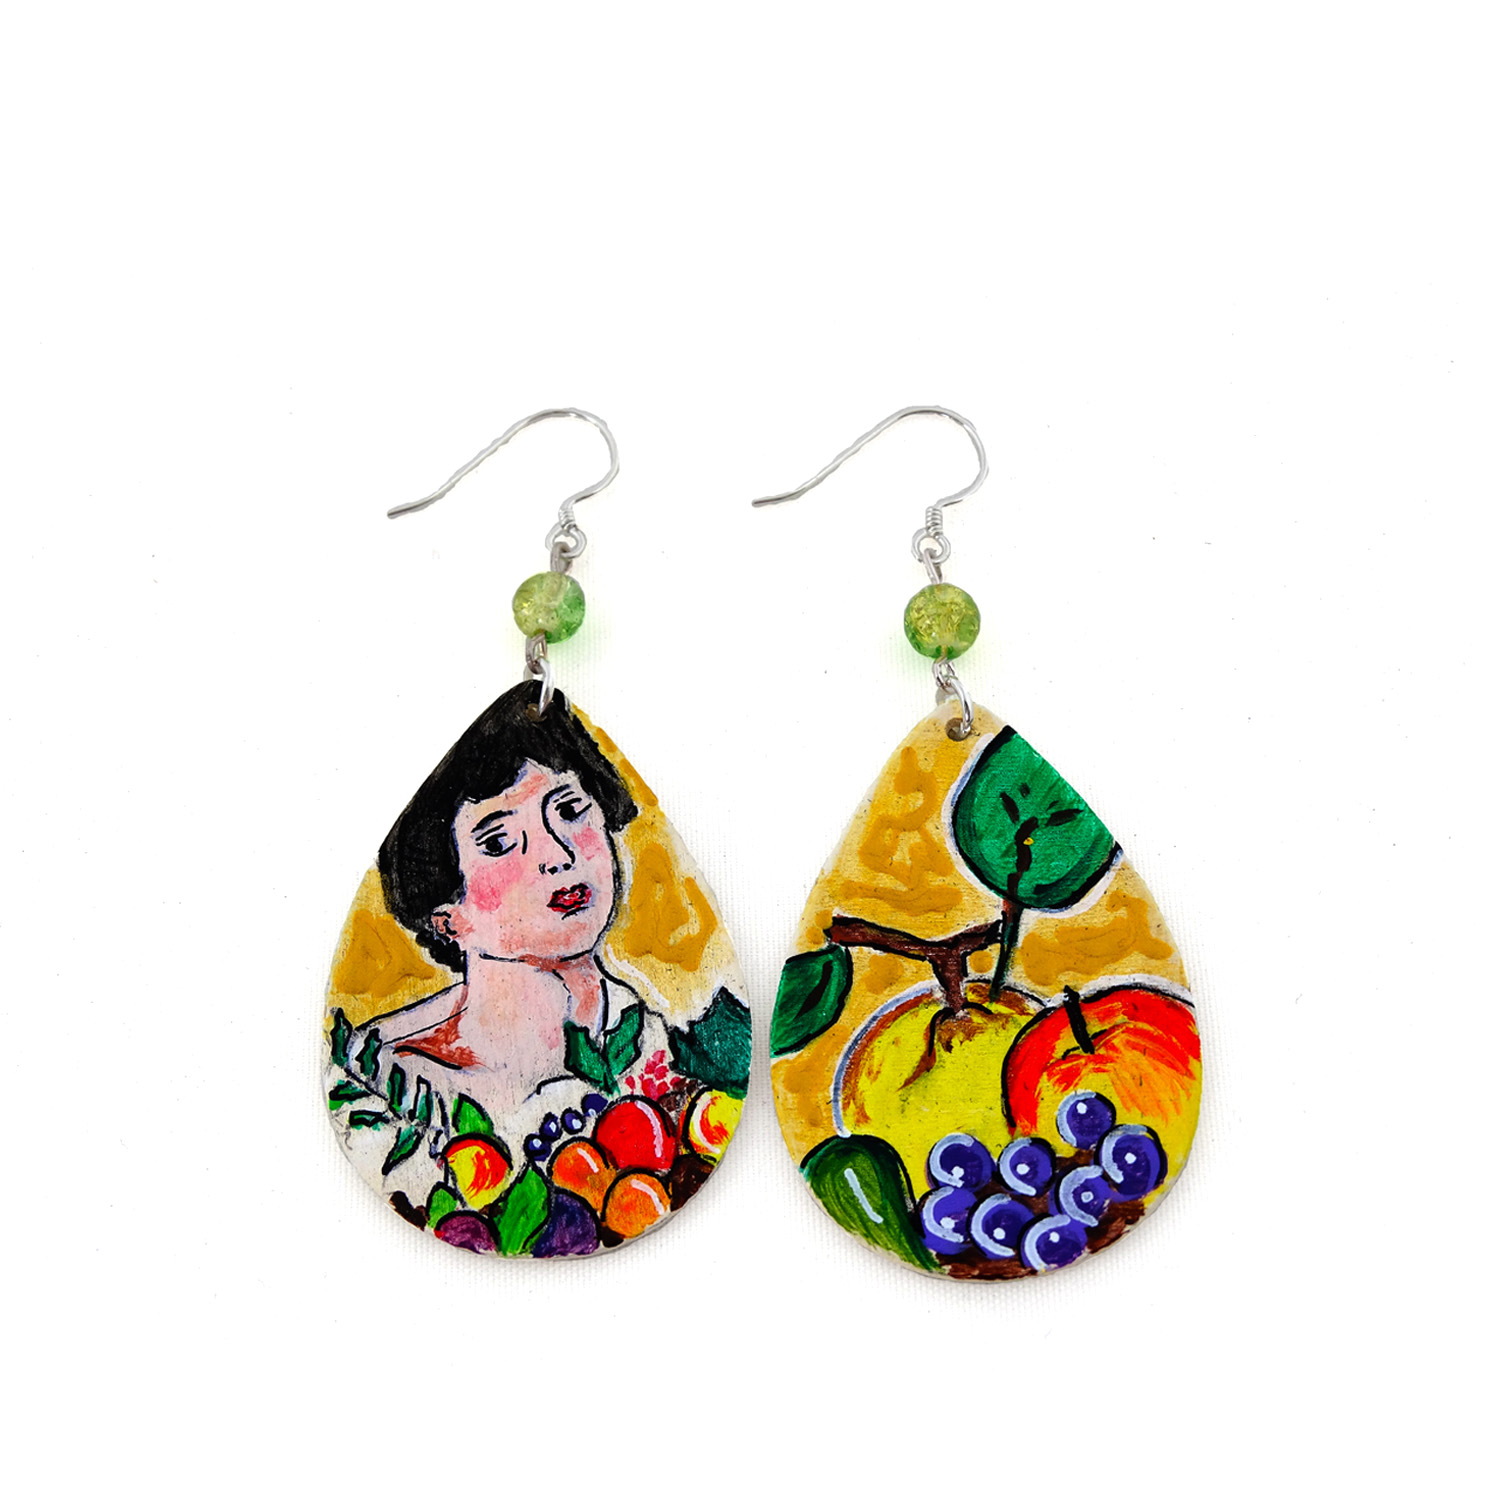 Hand-painted earrings - Child with a Basket of Fruit by Caravaggio